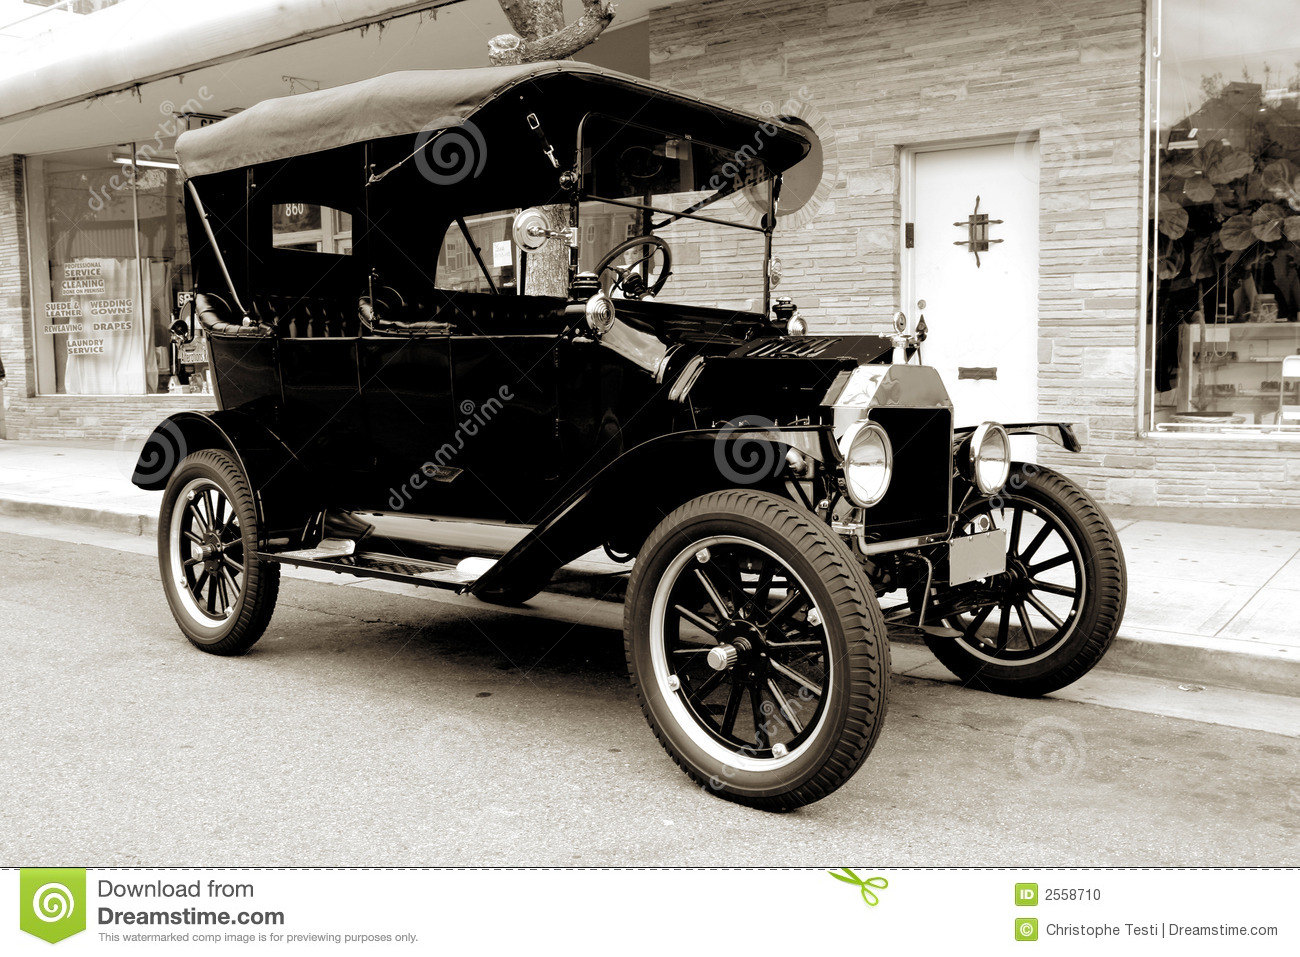 Old car from 1915 stock photo. Image of hotrod, 1900, historical ...